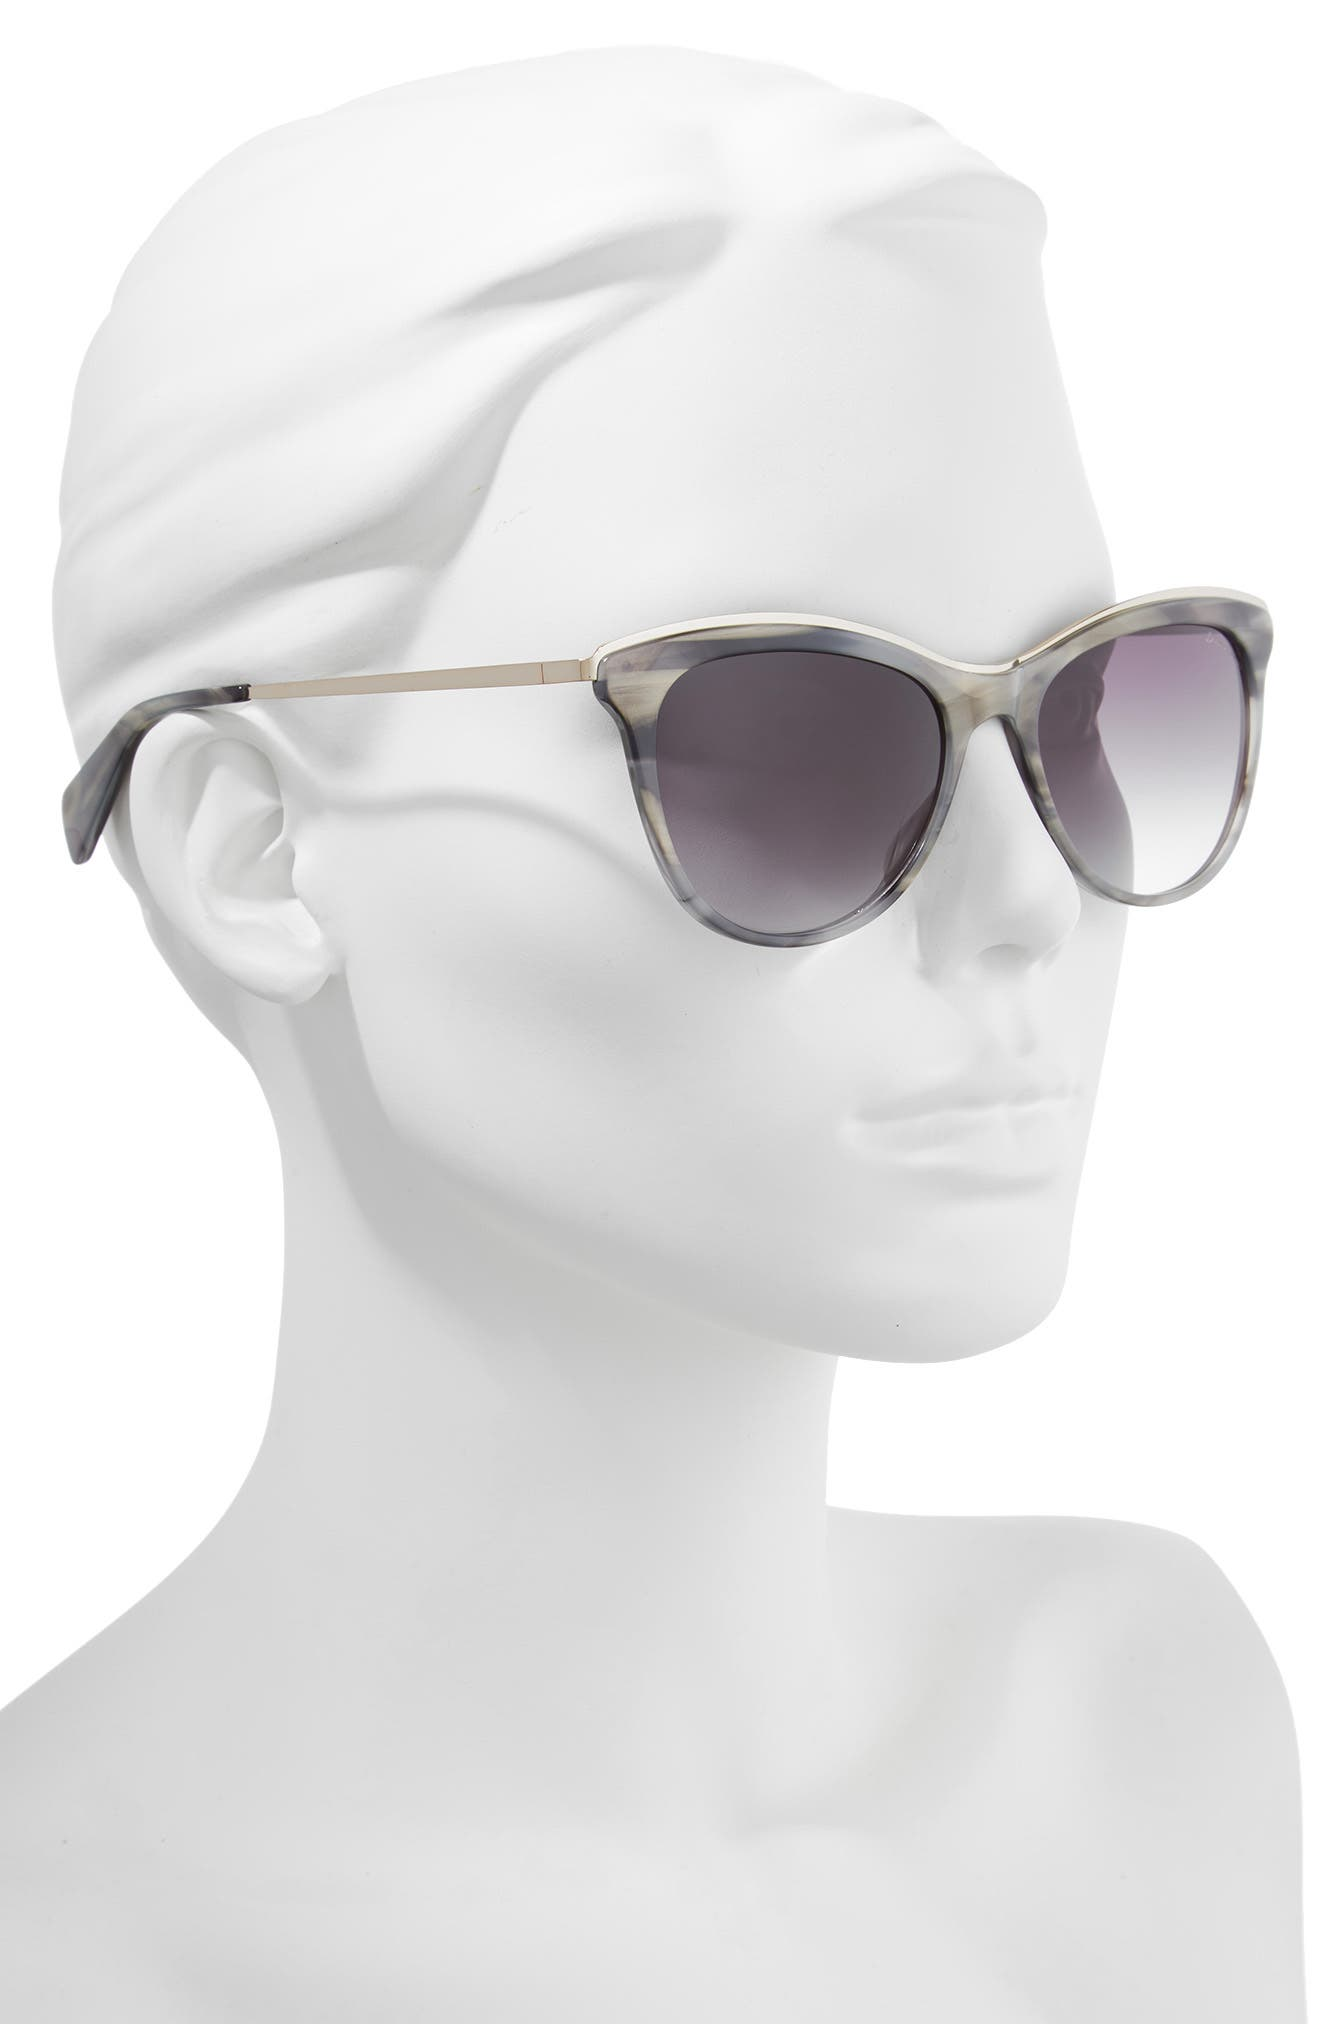 56mm Cat Eye Sunglasses,                             Alternate thumbnail 2, color,                             GREY